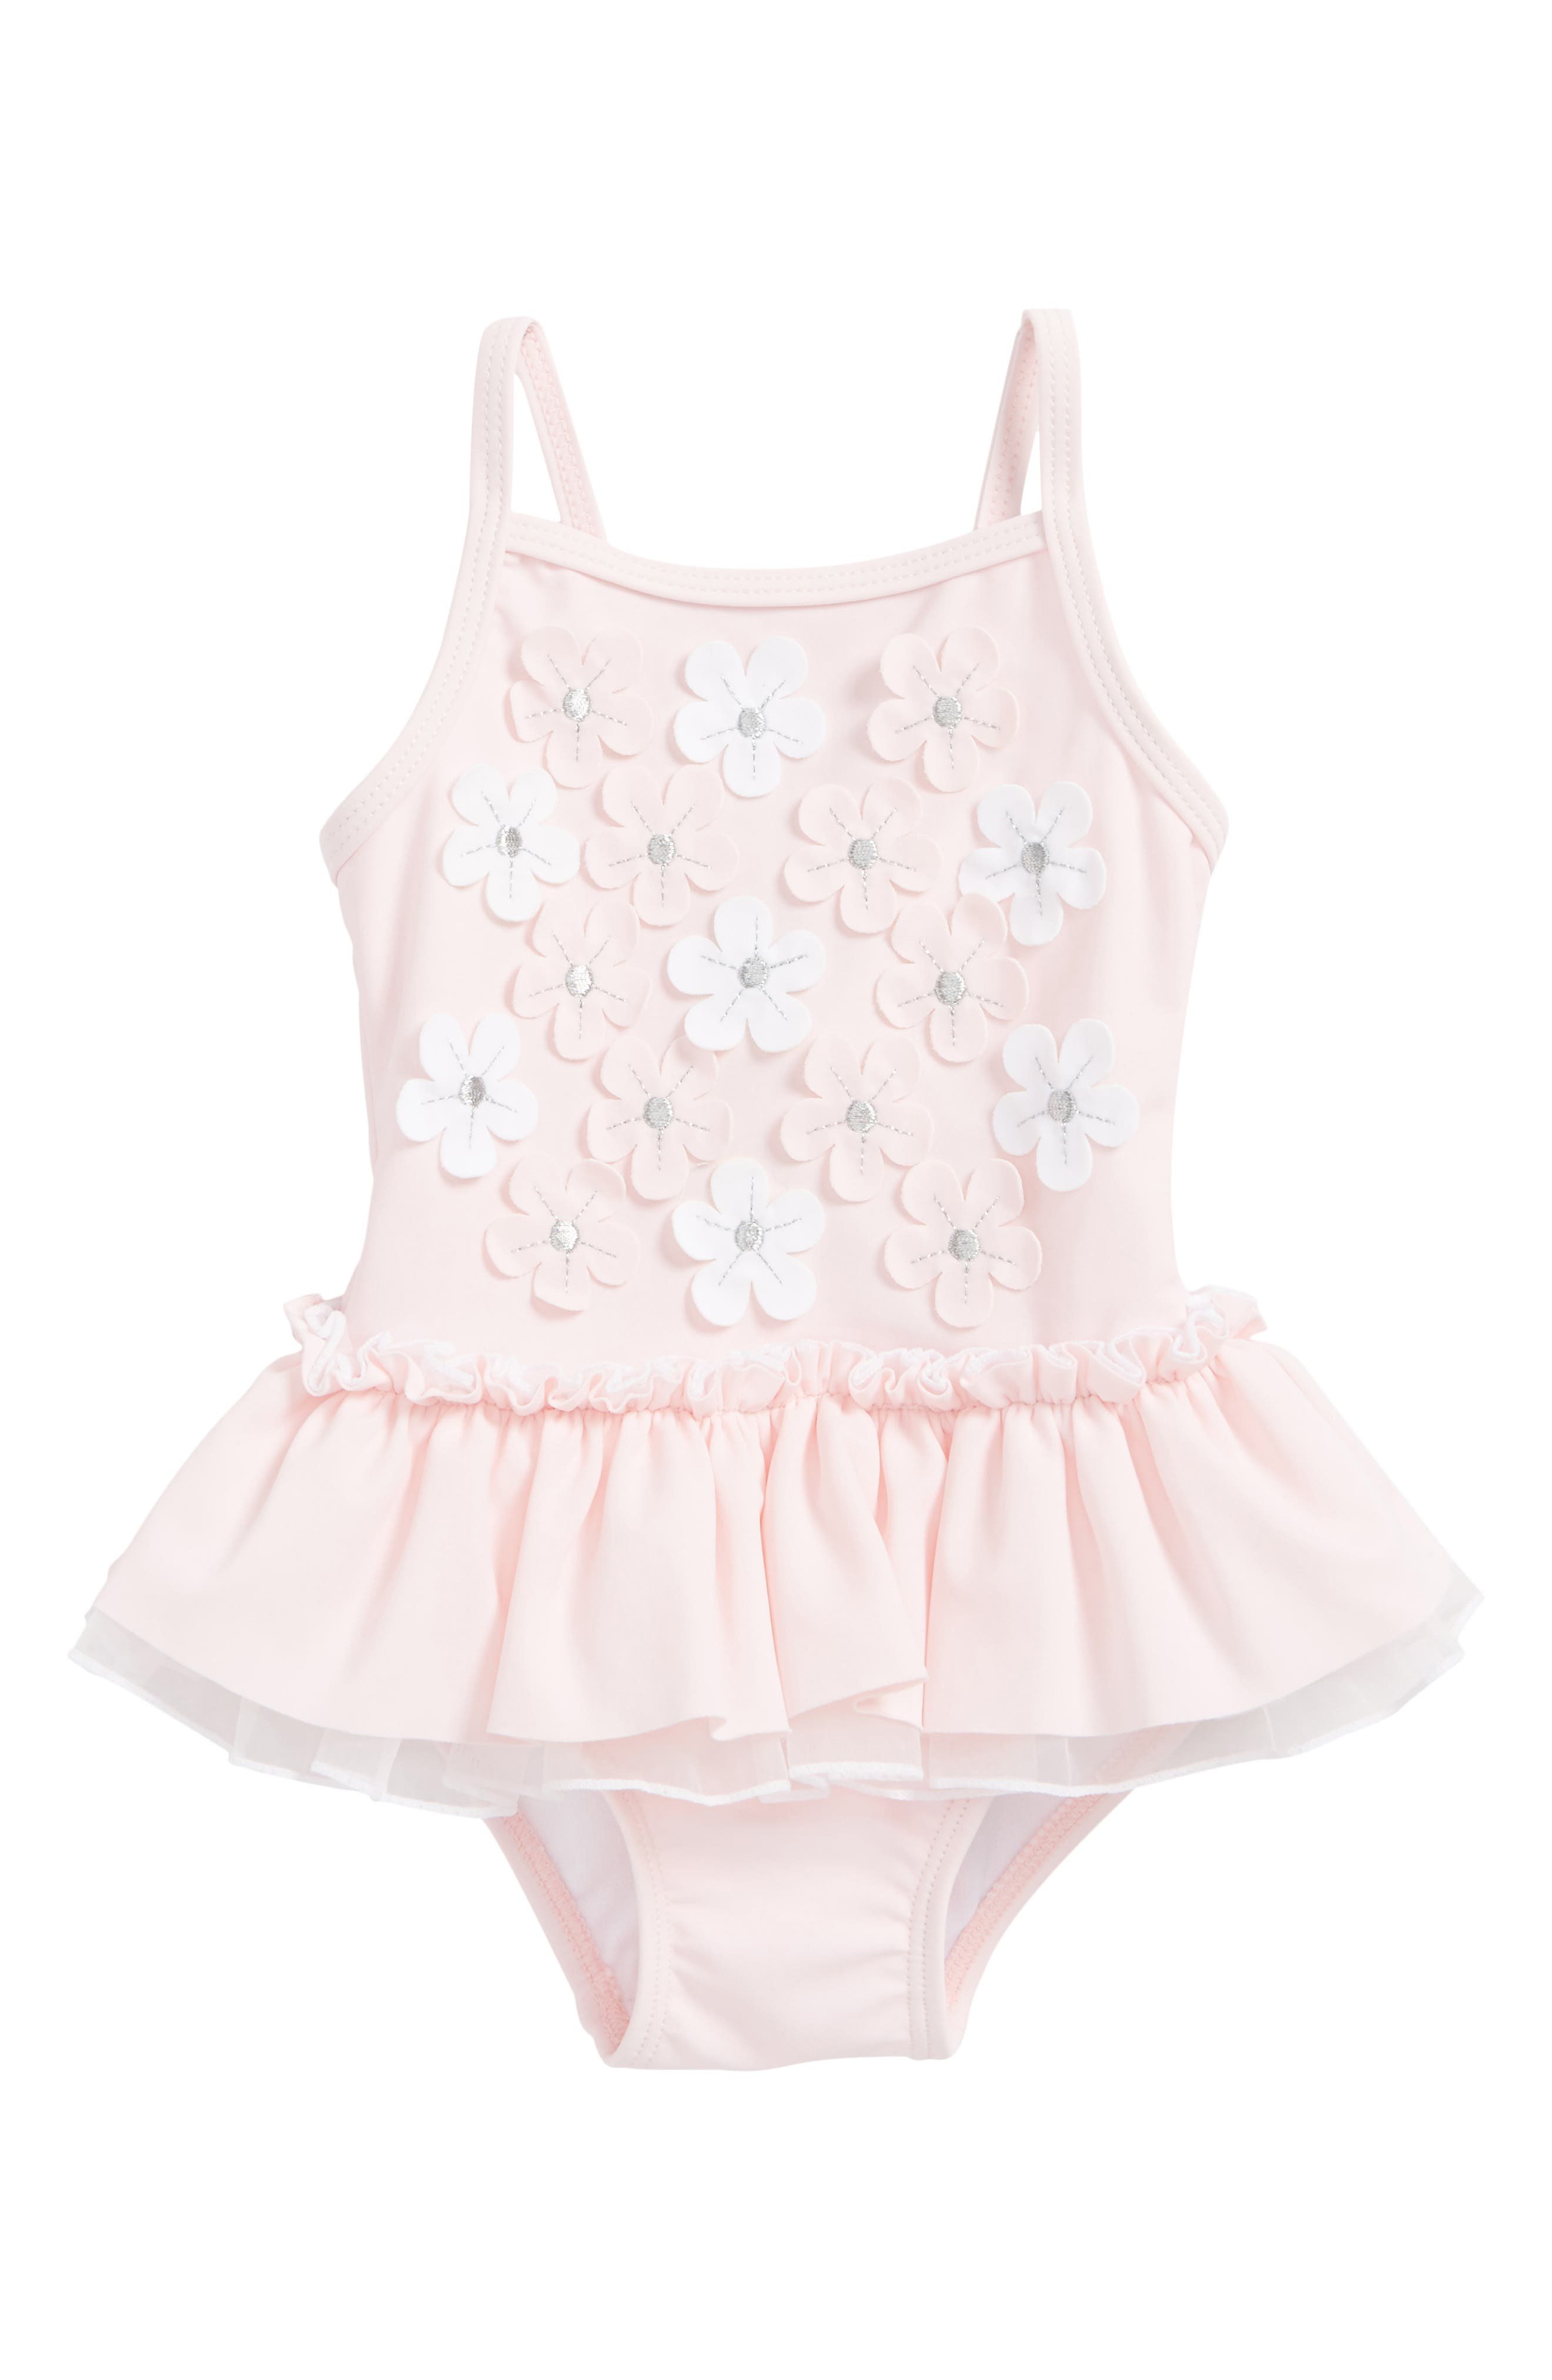 Alternate Image 1 Selected - Little Me Floral Appliqué One-Piece Swimsuit (Baby Girls)